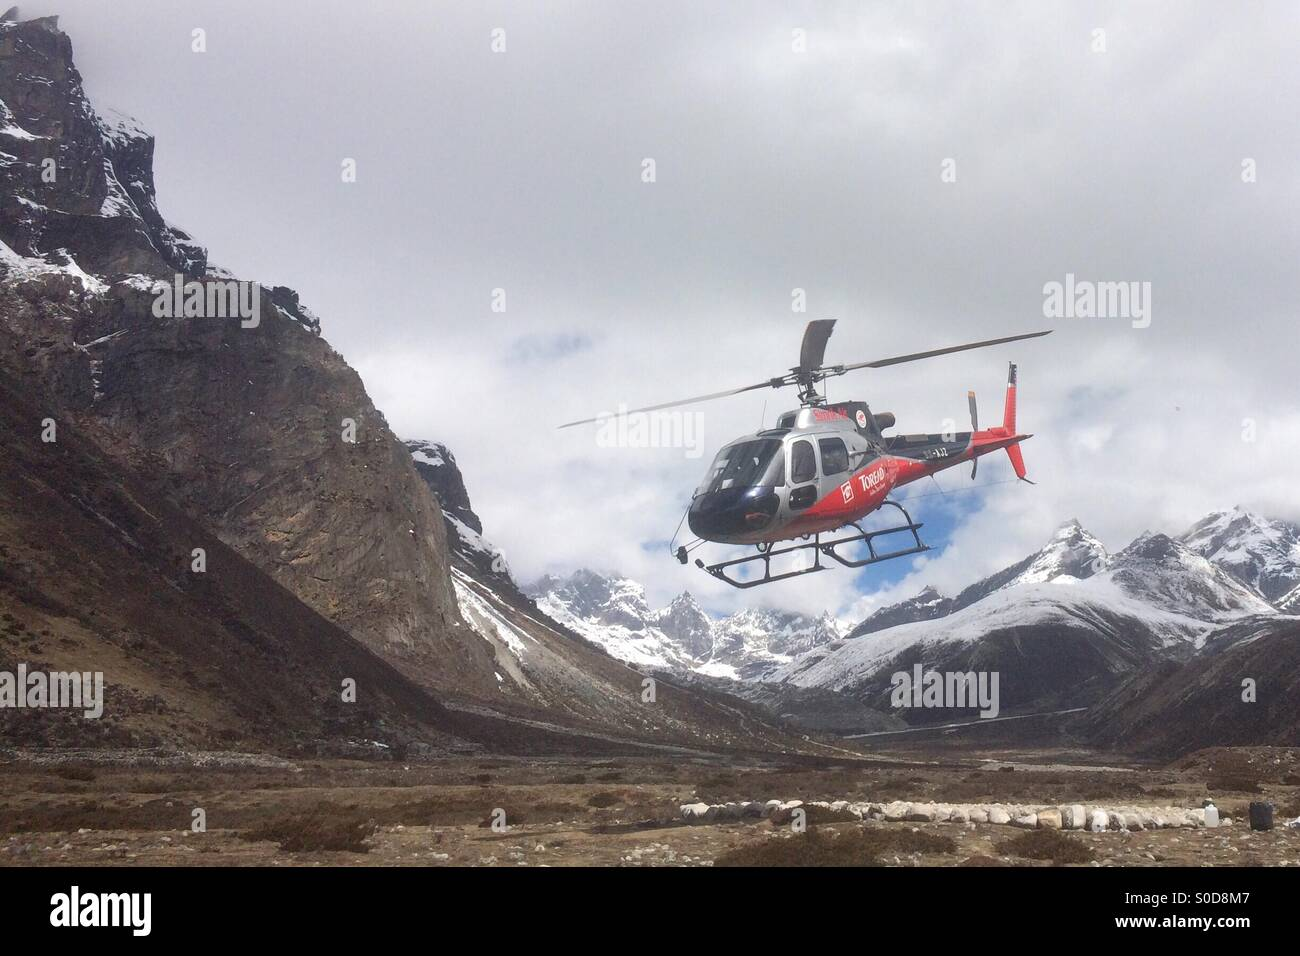 A rescue helicopter takes off from the village of Pheriche in the Everest region of Nepal. - Stock Image